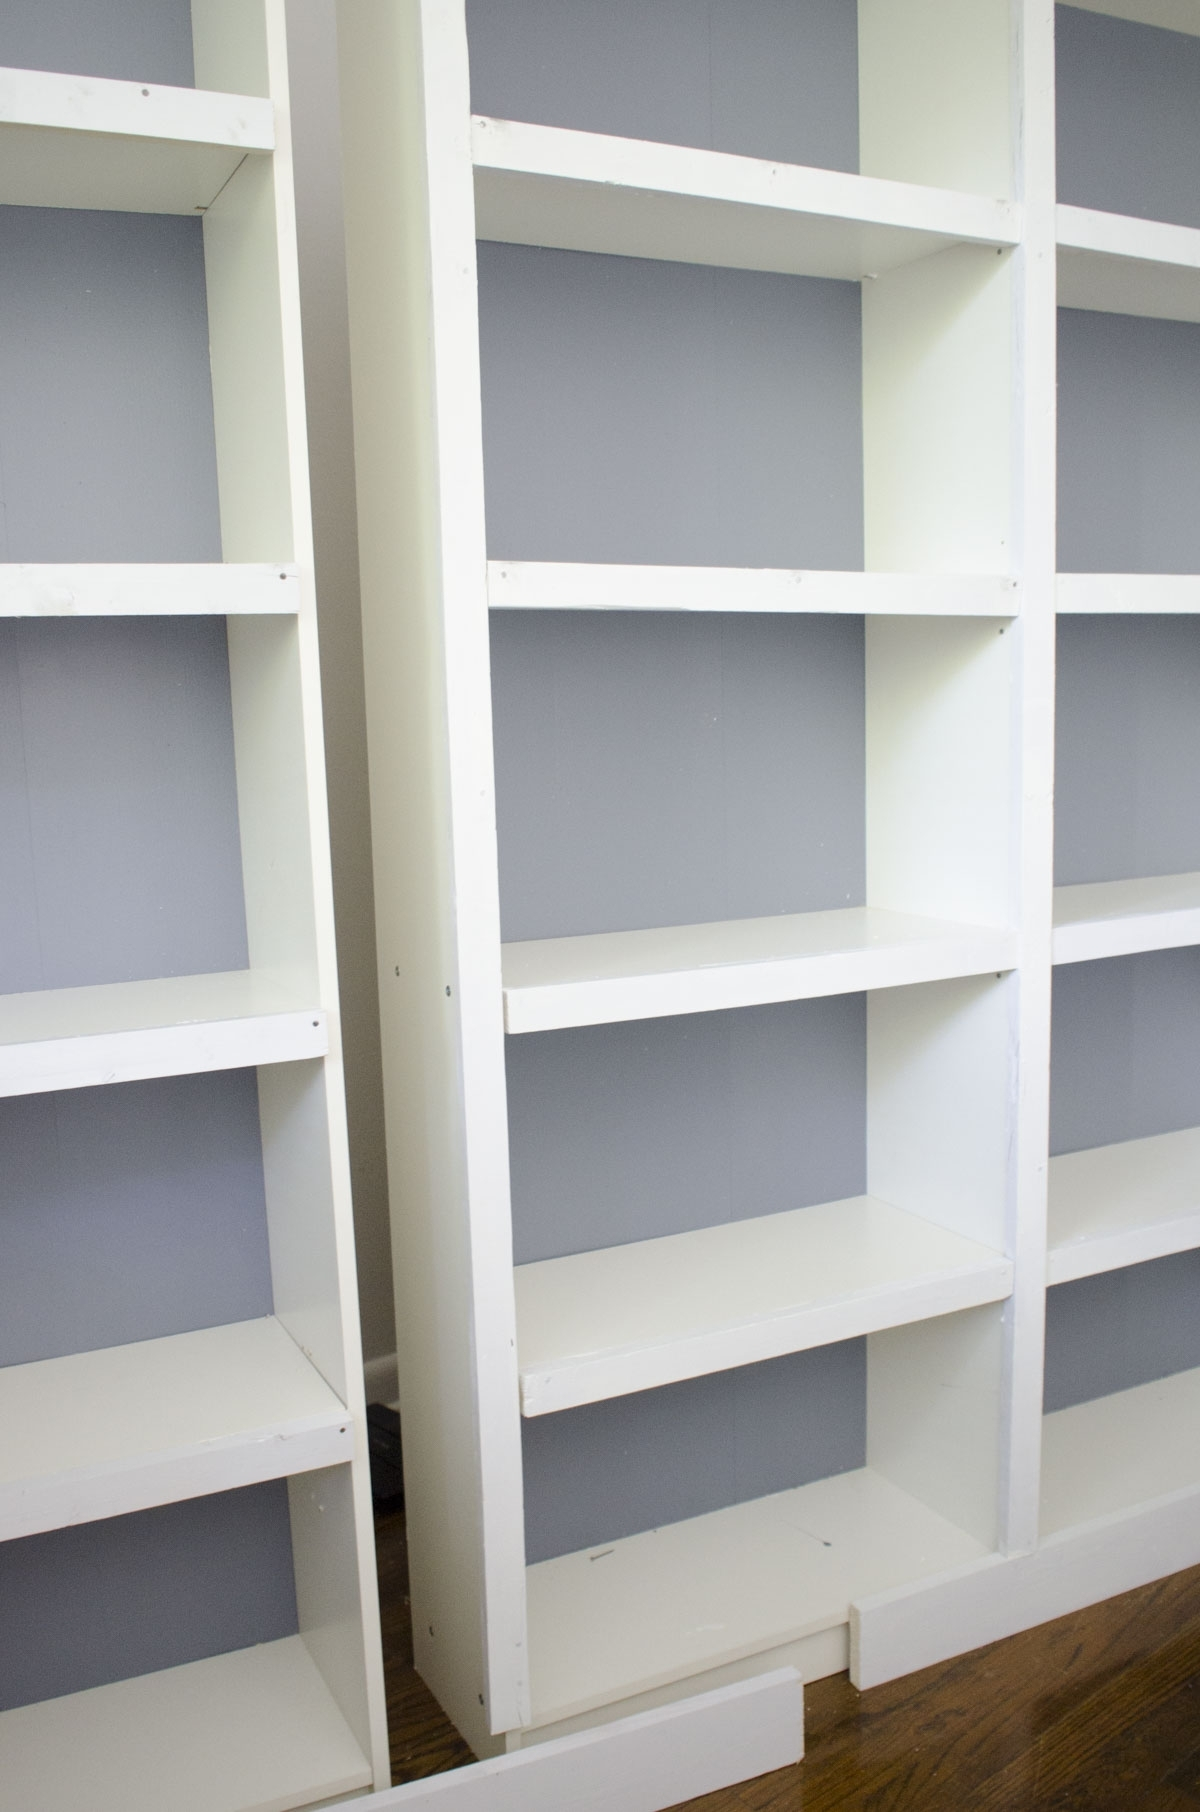 Upgrading My Ikea Bookshelves – Thou Swell Pertaining To 2018 Diy Bookcases (View 12 of 15)